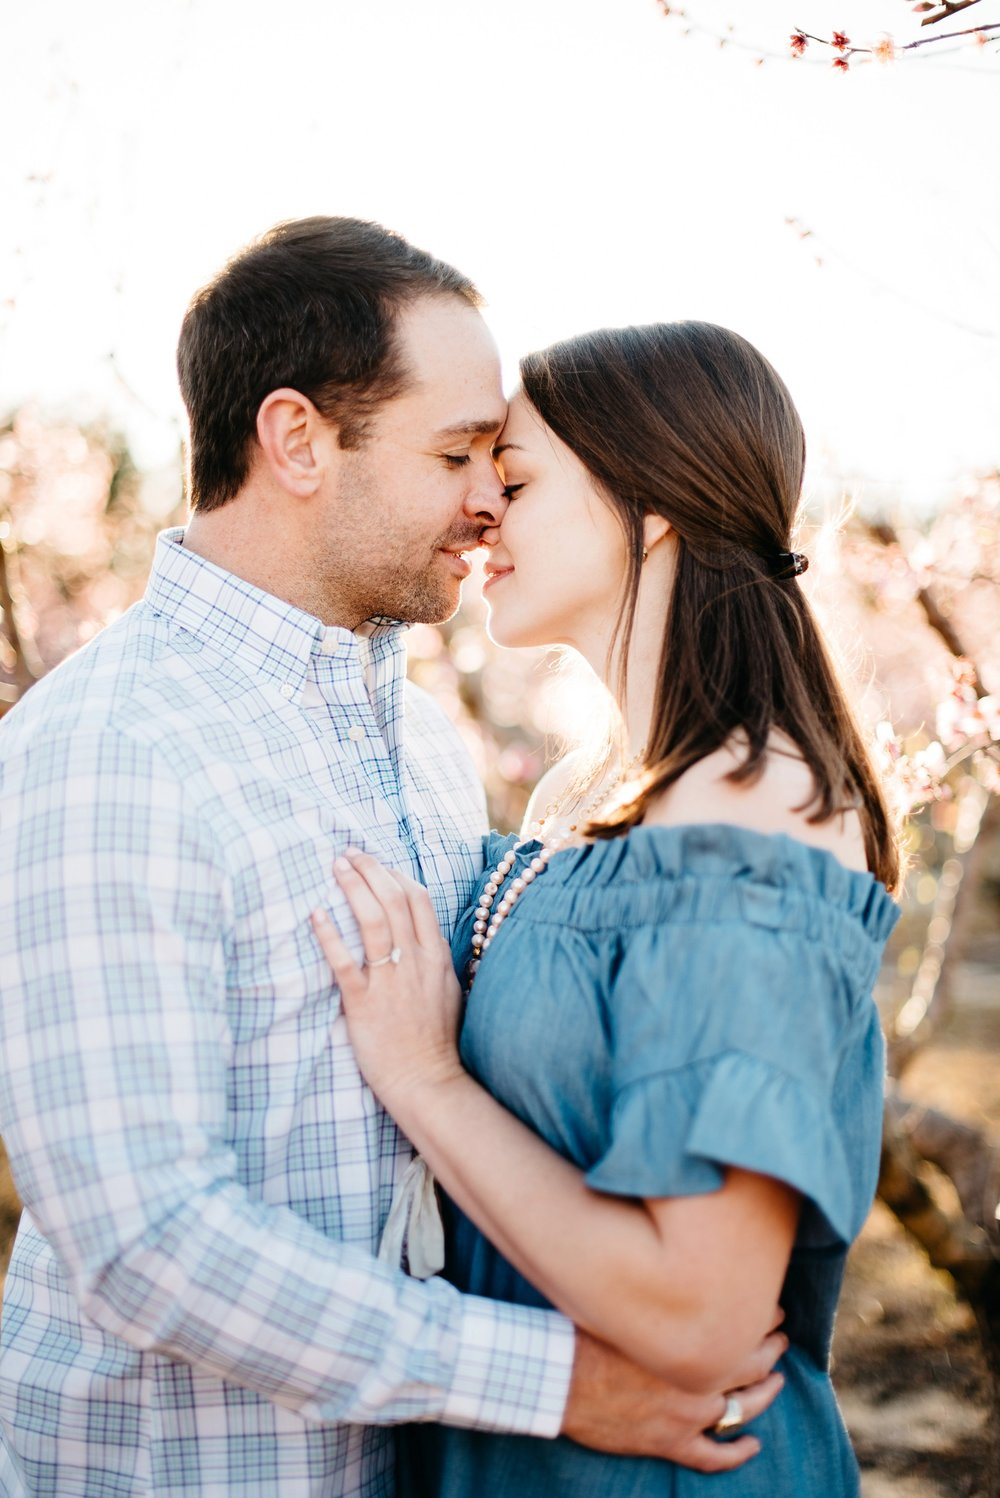 peachtree_engagement_session_1848.jpg